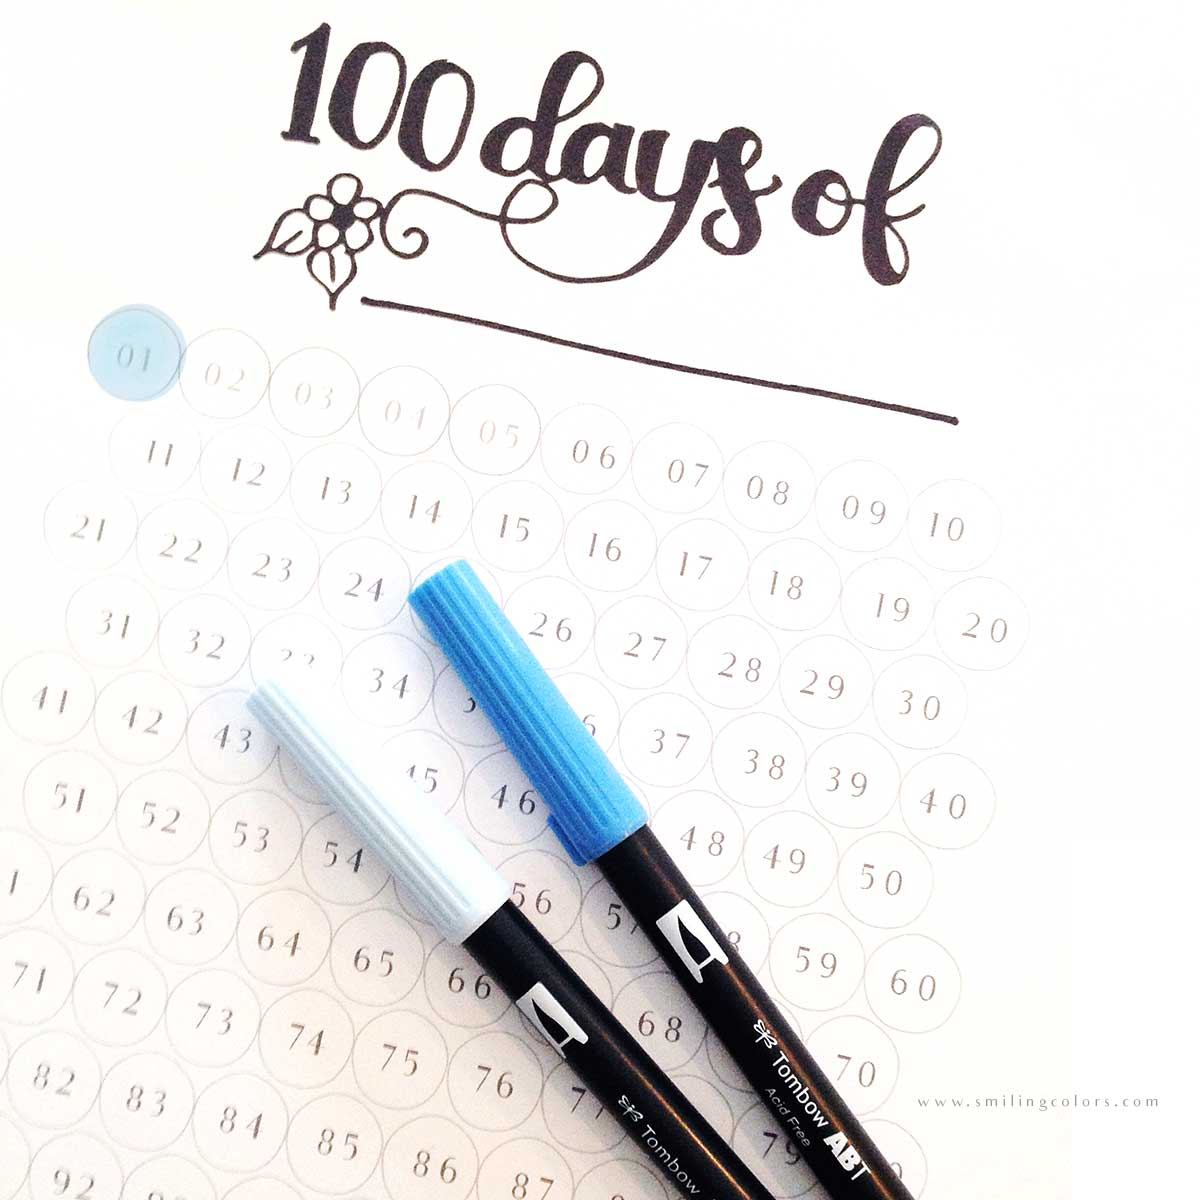 photo regarding 100 Days Printable called No cost 100 working day reason monitoring printable, precisely down load and colour!